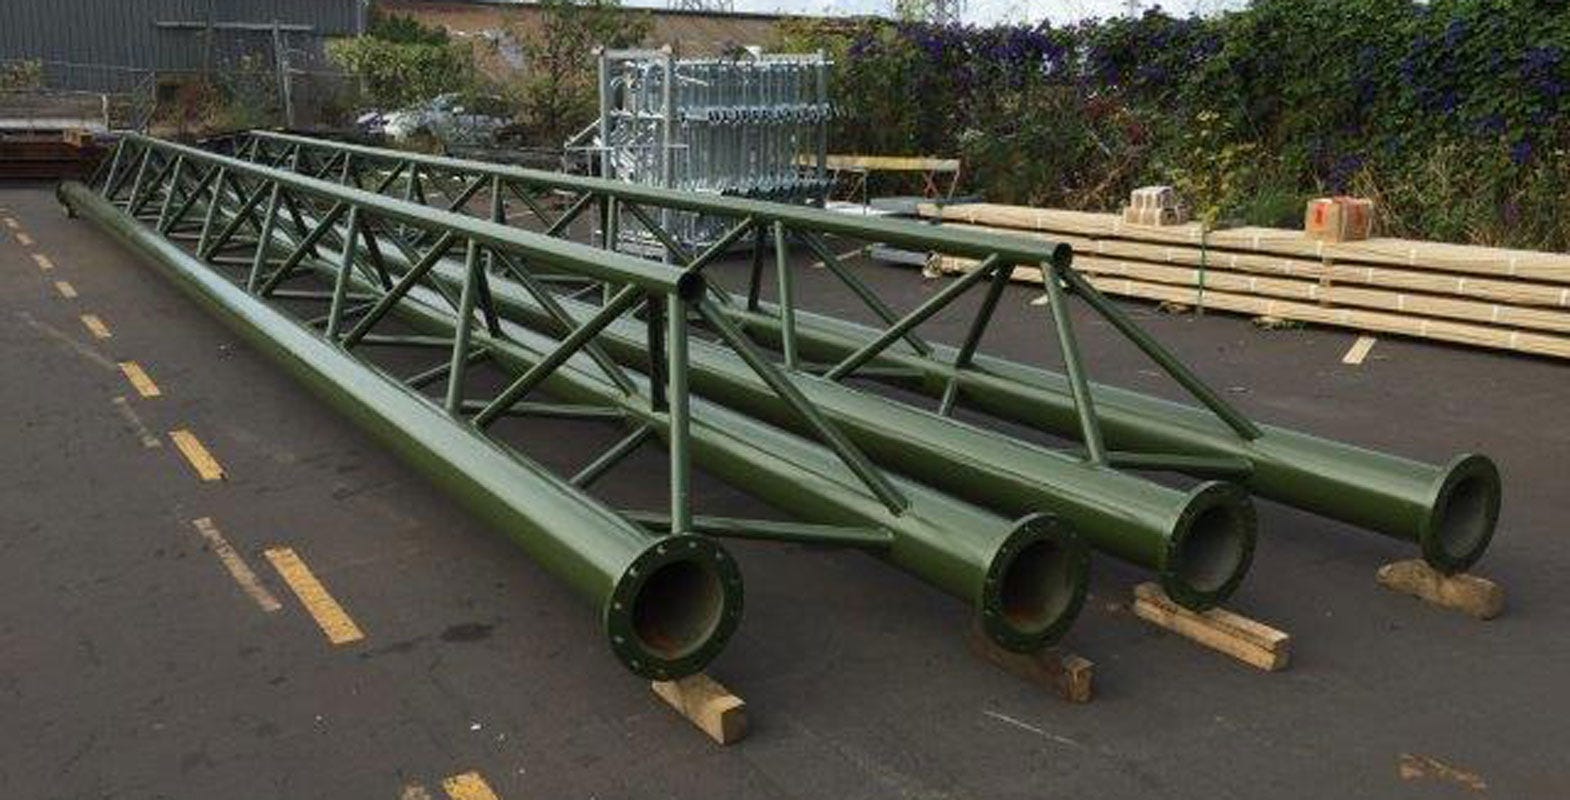 Steelcraft prove success from focusing on key tasks